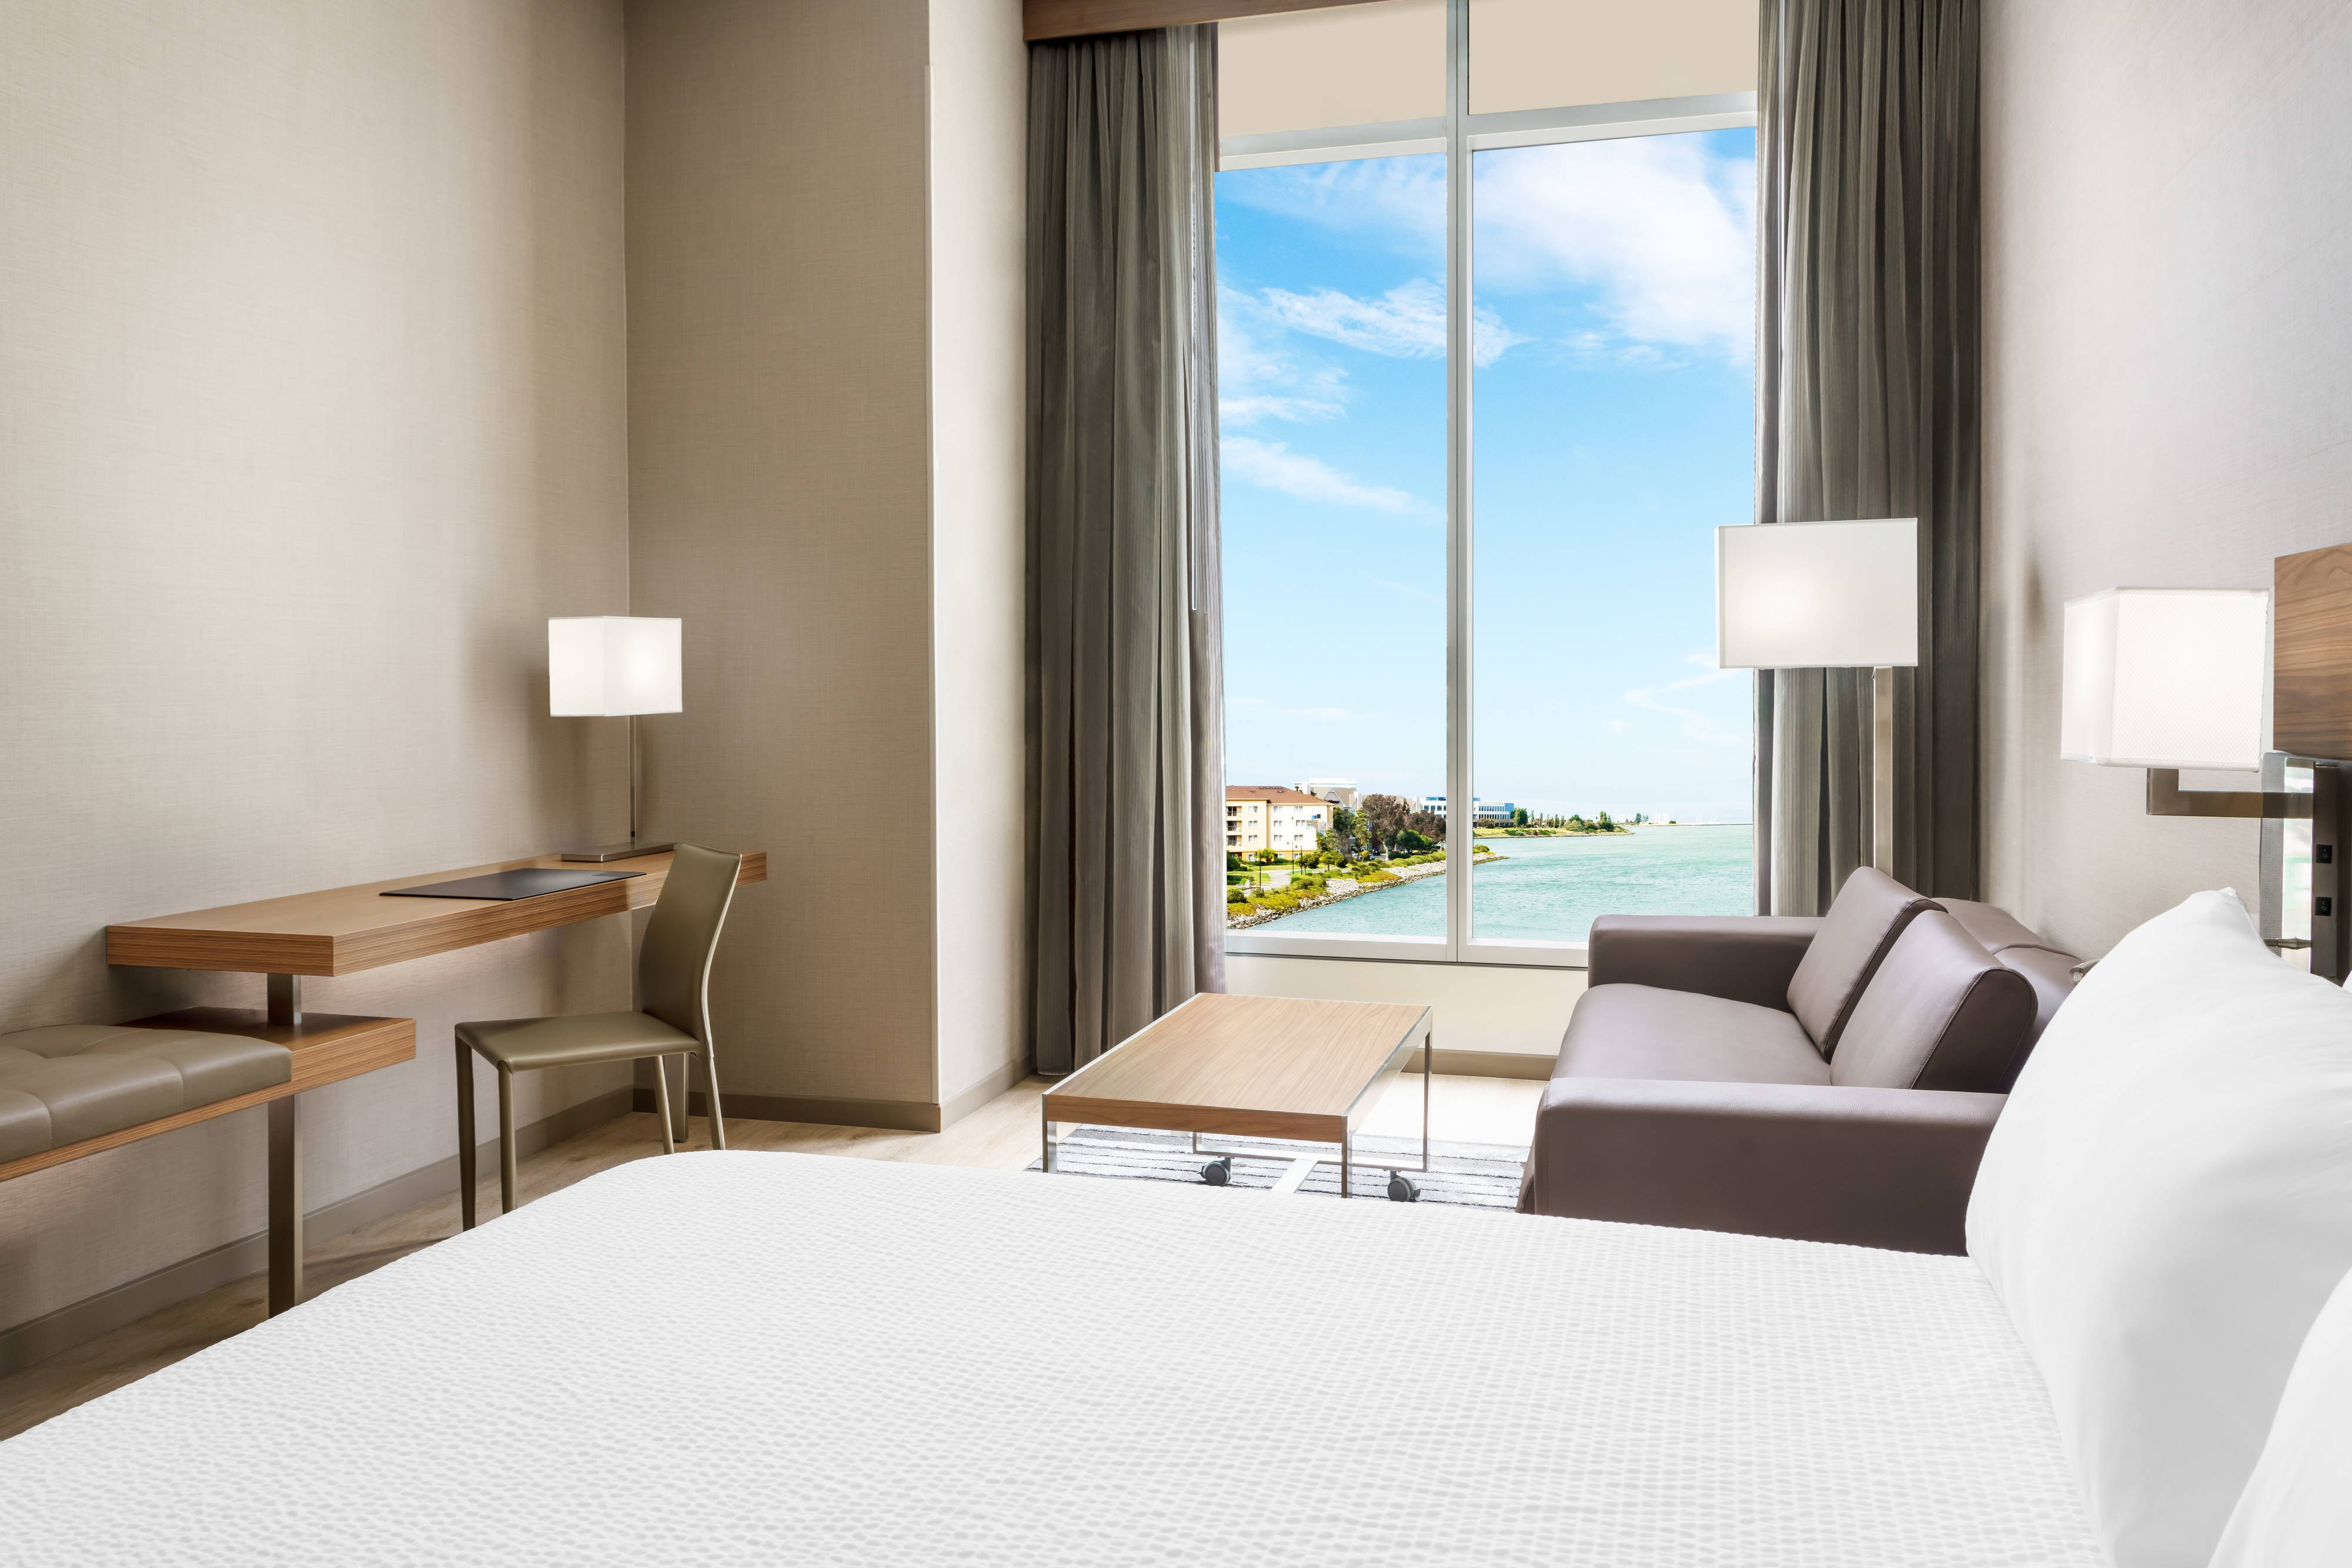 Hotel on the San Francisco Bay Designs Rooms with Style, Comfort ...